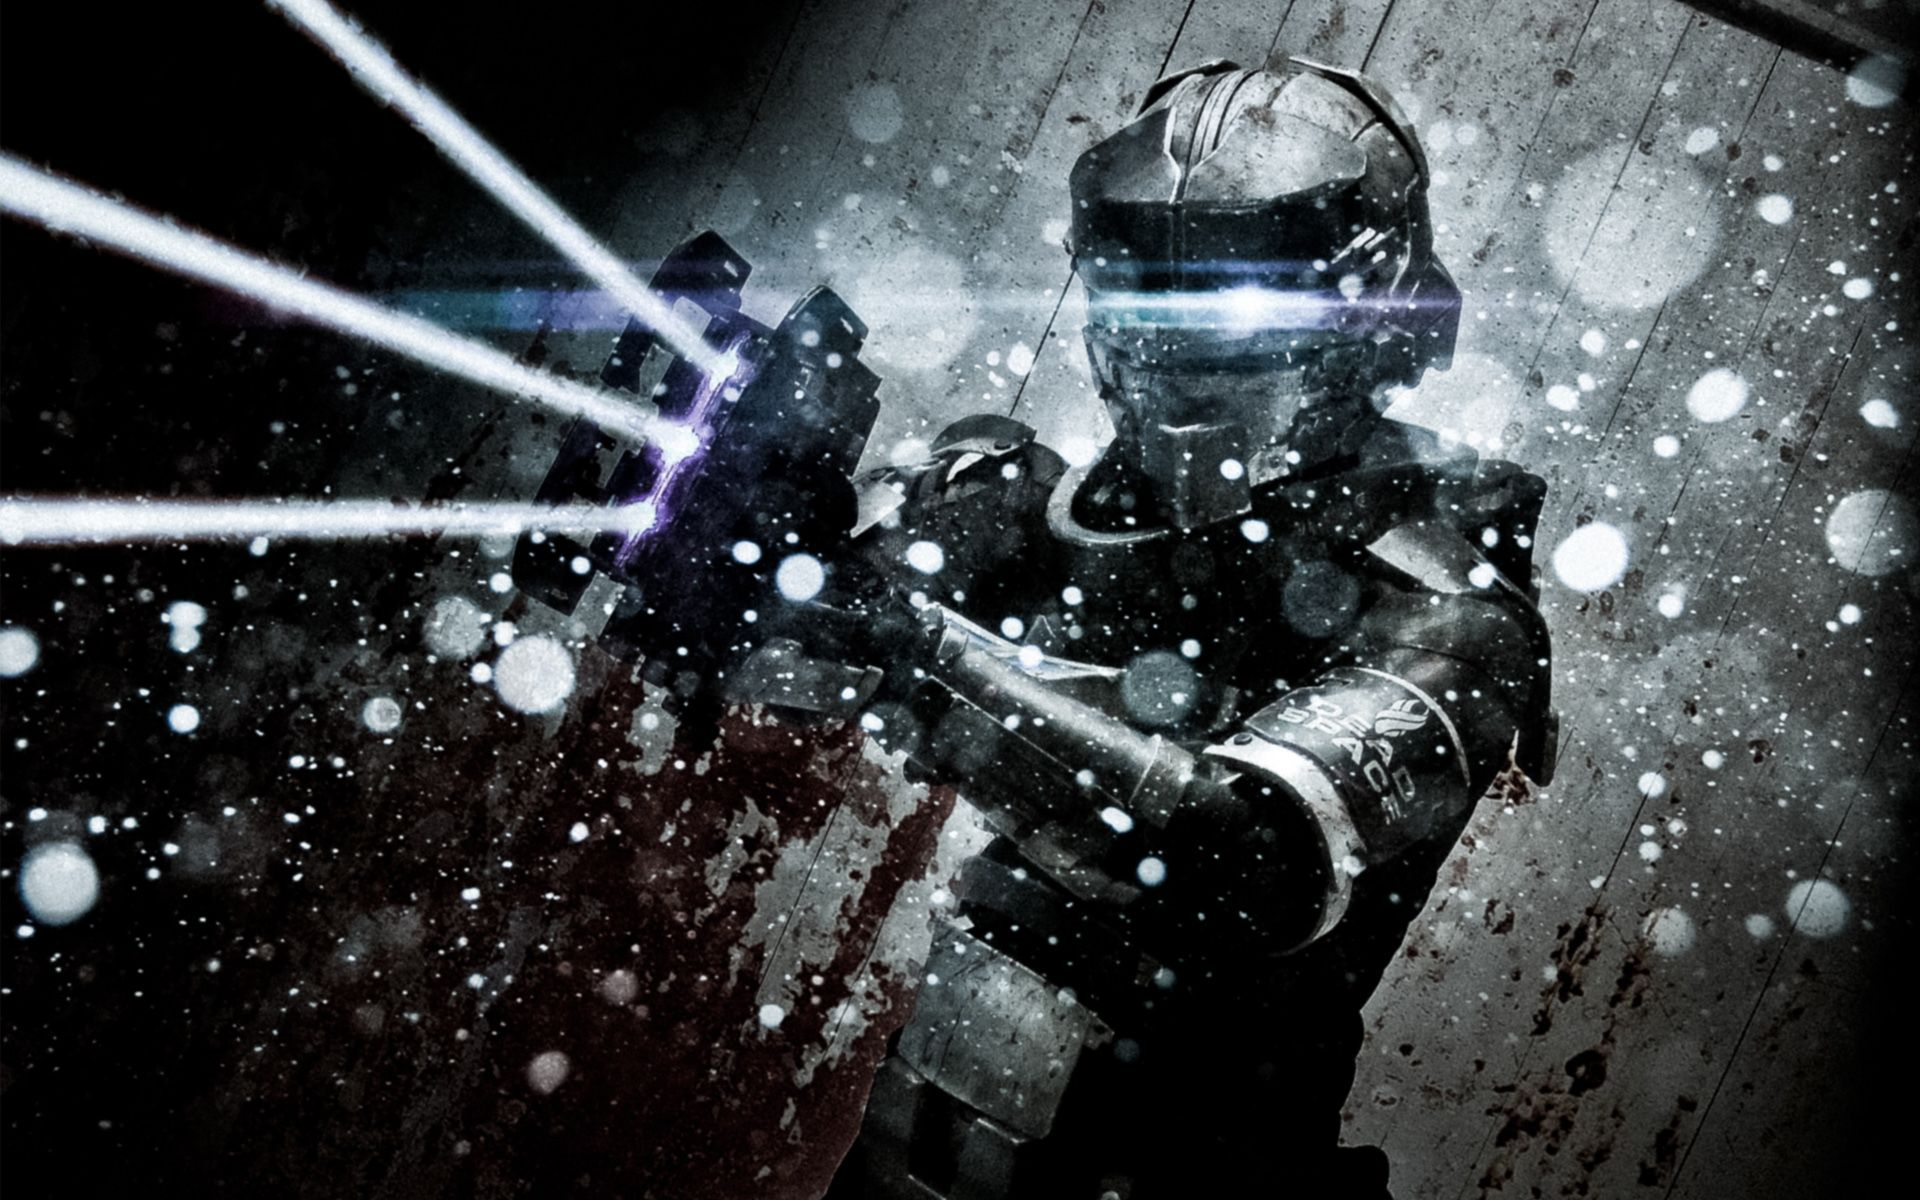 Dead Space Http Jobforgamers Blogspot Com Dead Space Space Iphone Wallpaper Abstract Wallpaper